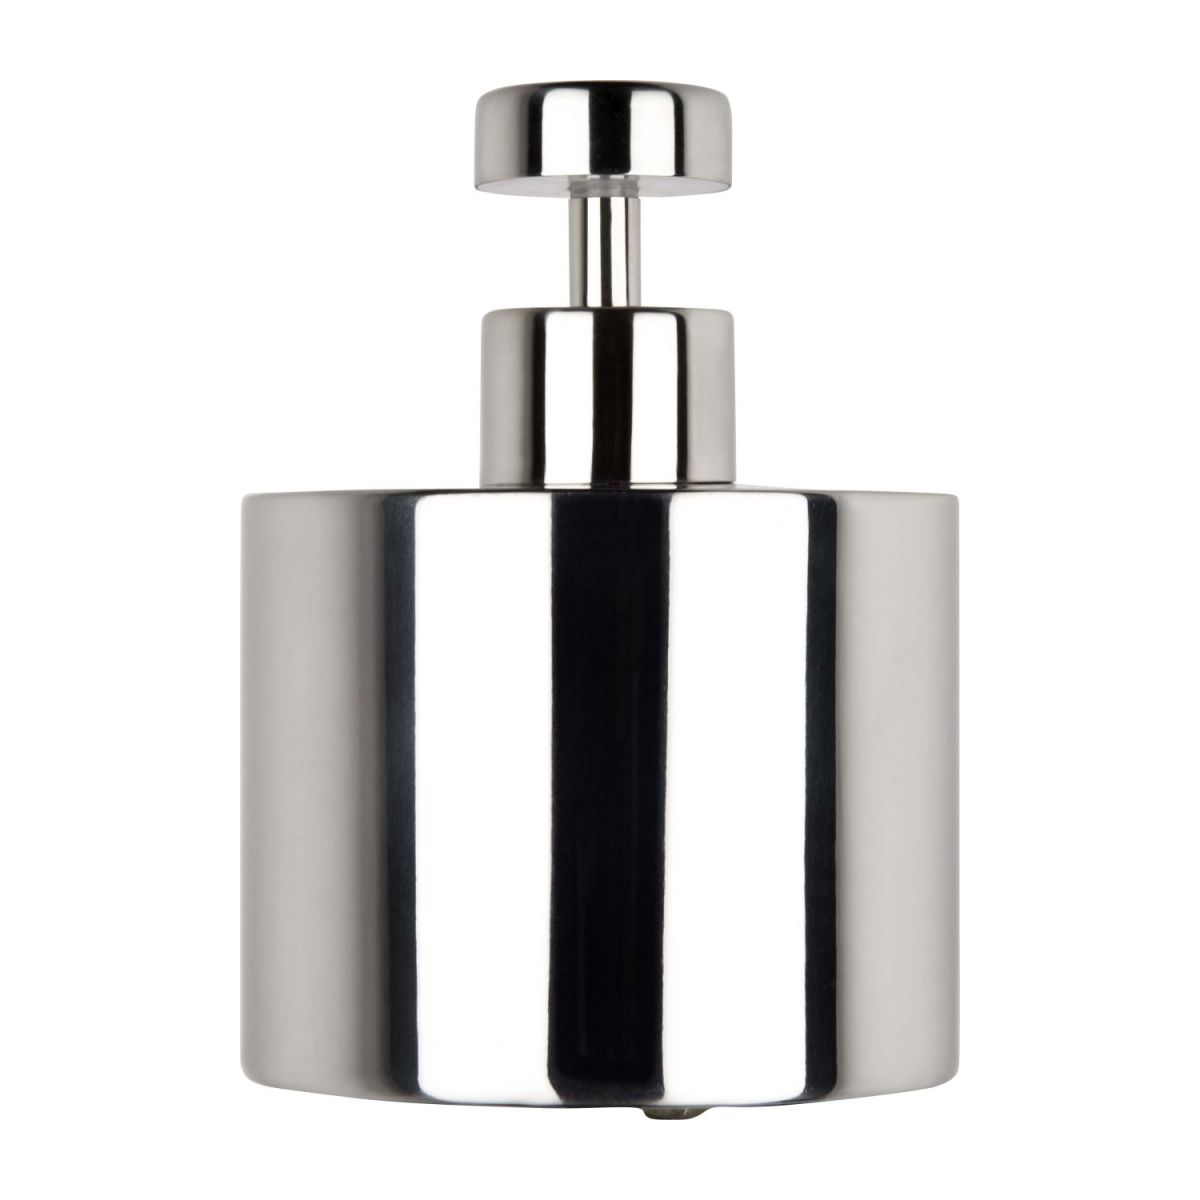 Soap dispenser in stainless steel n°5